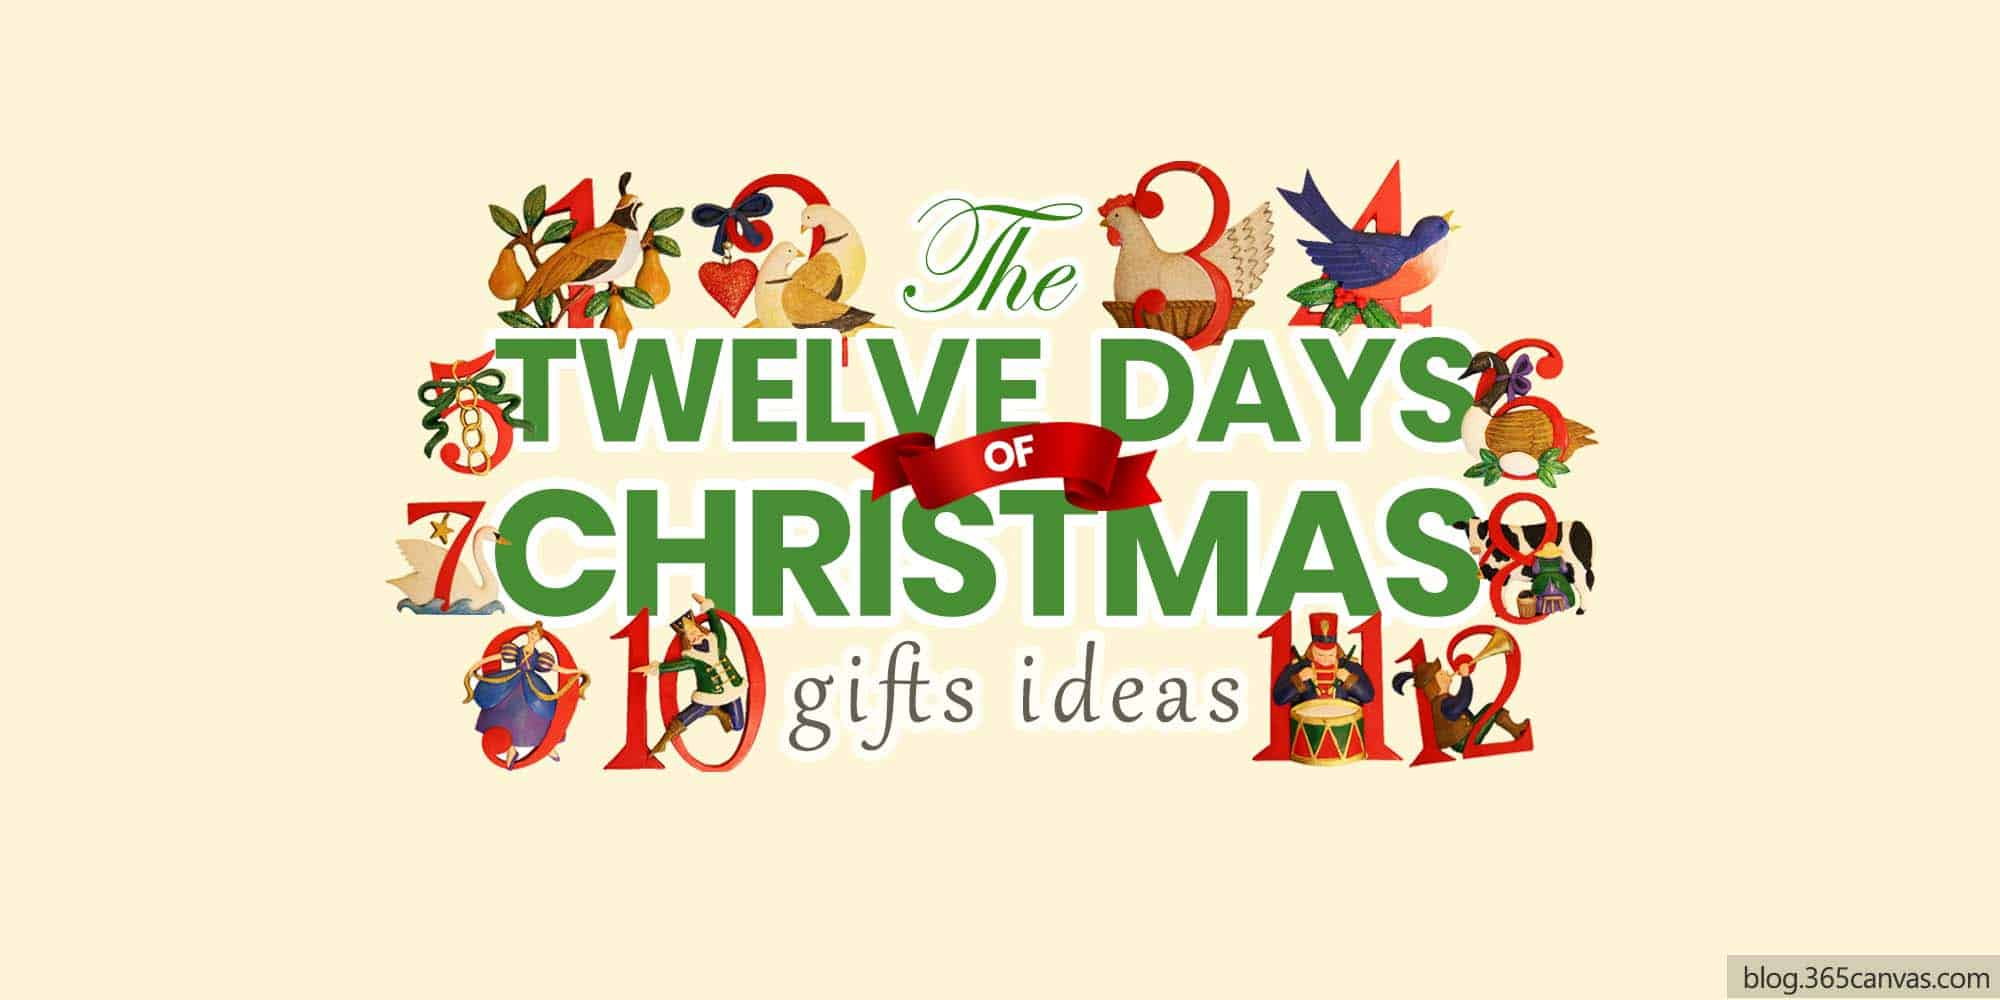 12 Days of Christmas Gift Ideas for Family and Friends (2021)